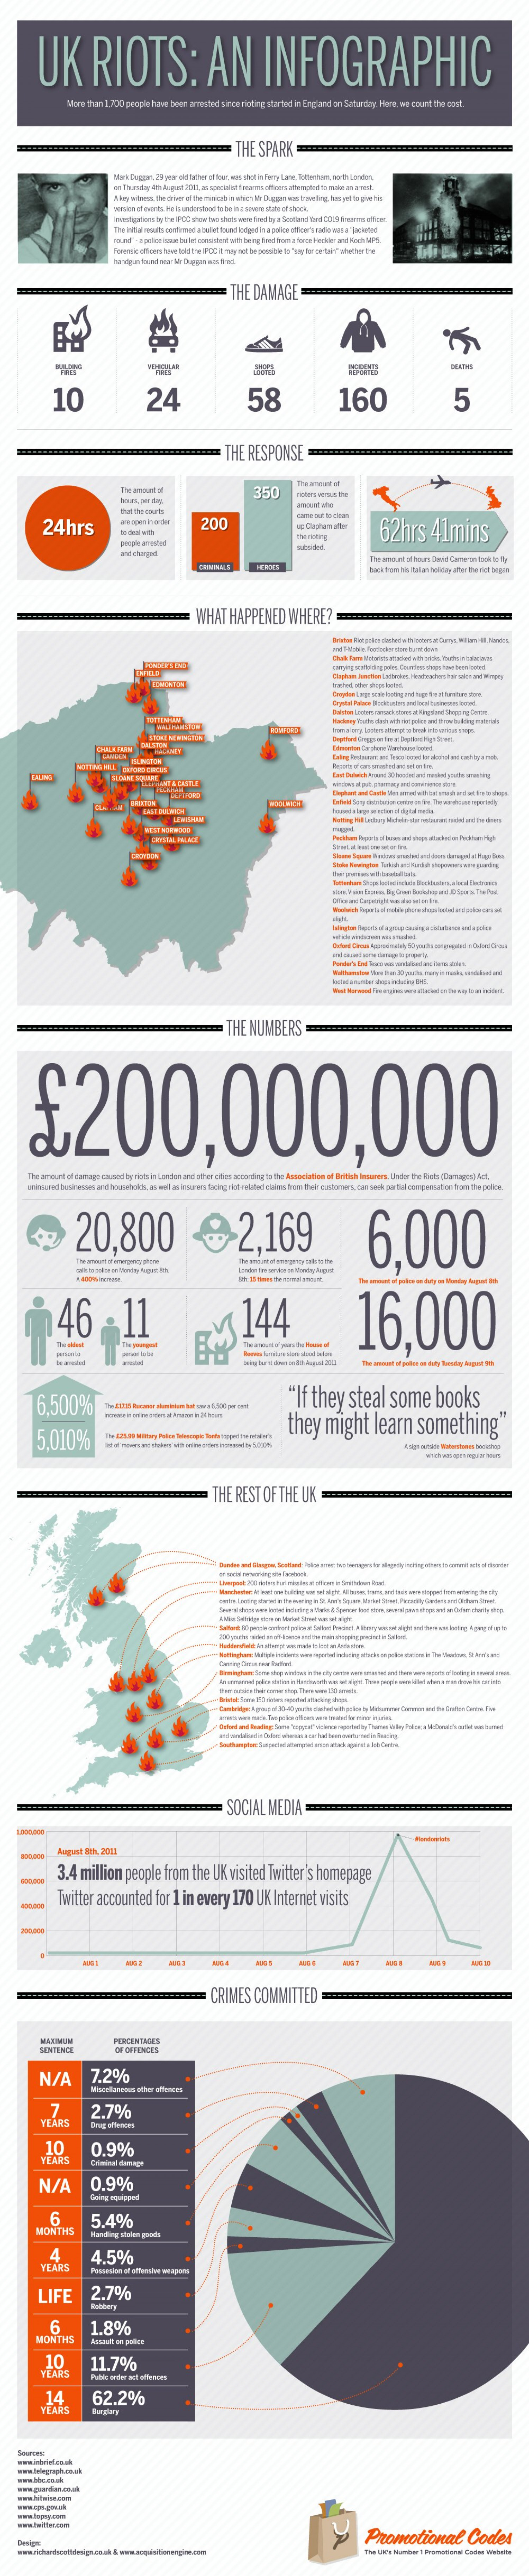 UK Riots an infographic  Infographic